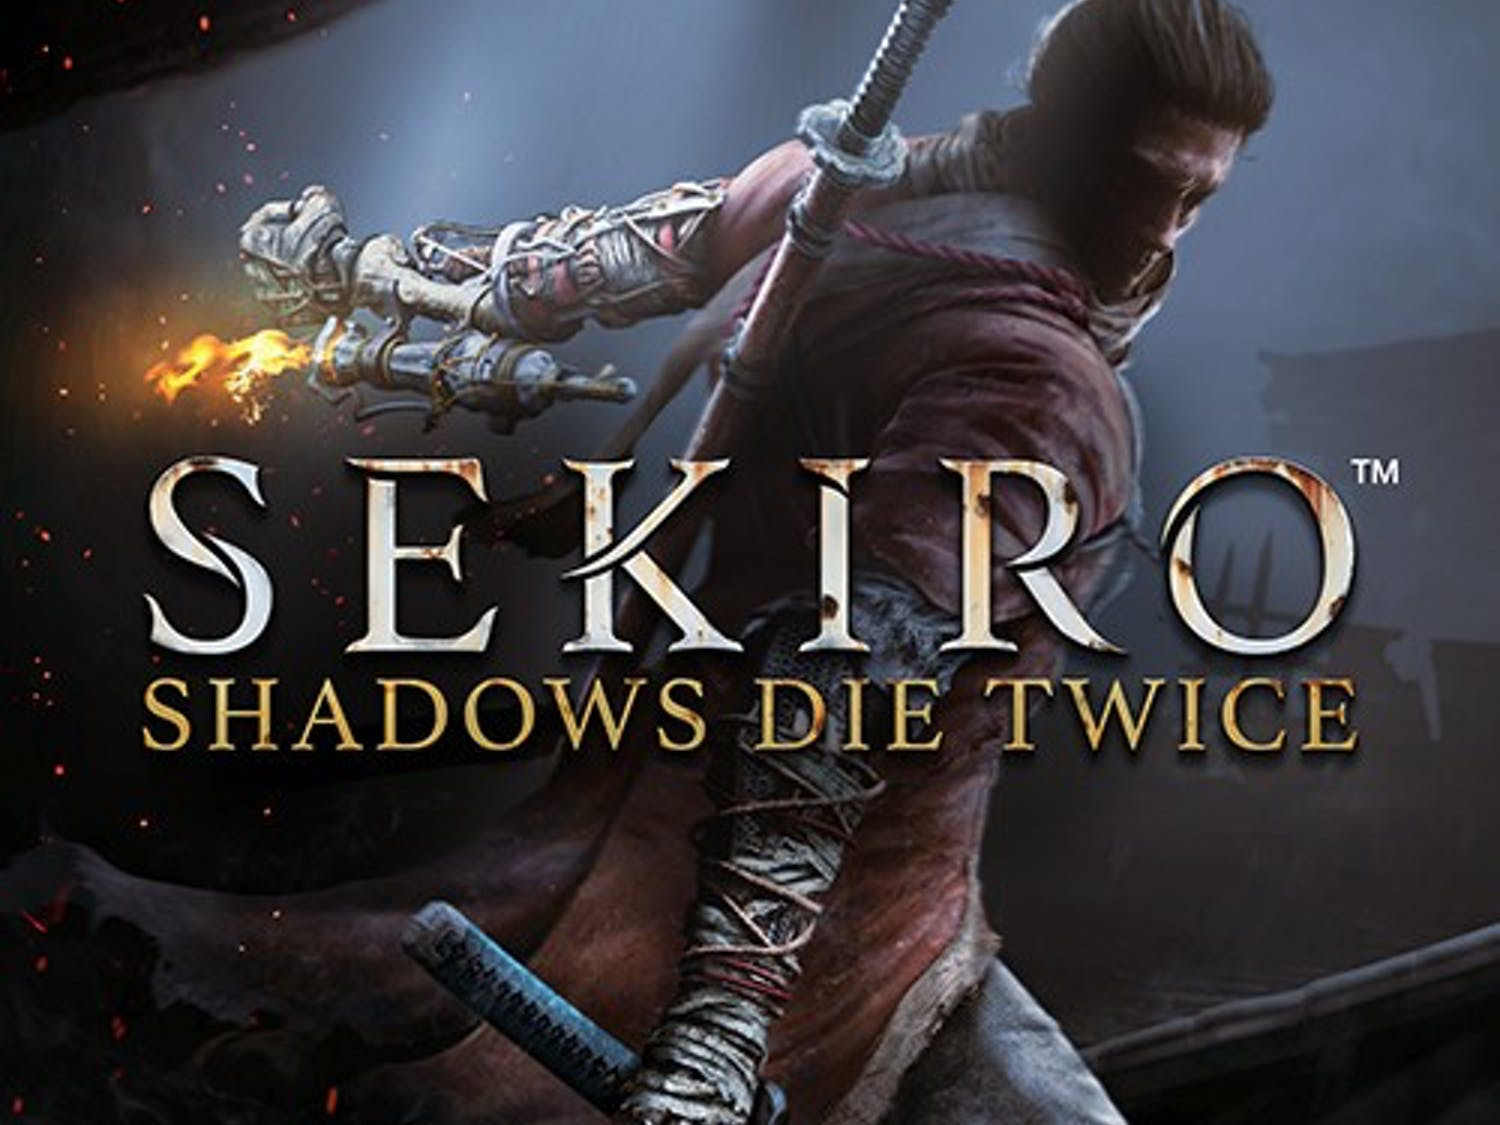 """From Software releases their latest game, """"Sekiro: Shadows Die Twice,"""" a challenging combat creation that sparks discussion in the gaming industry."""